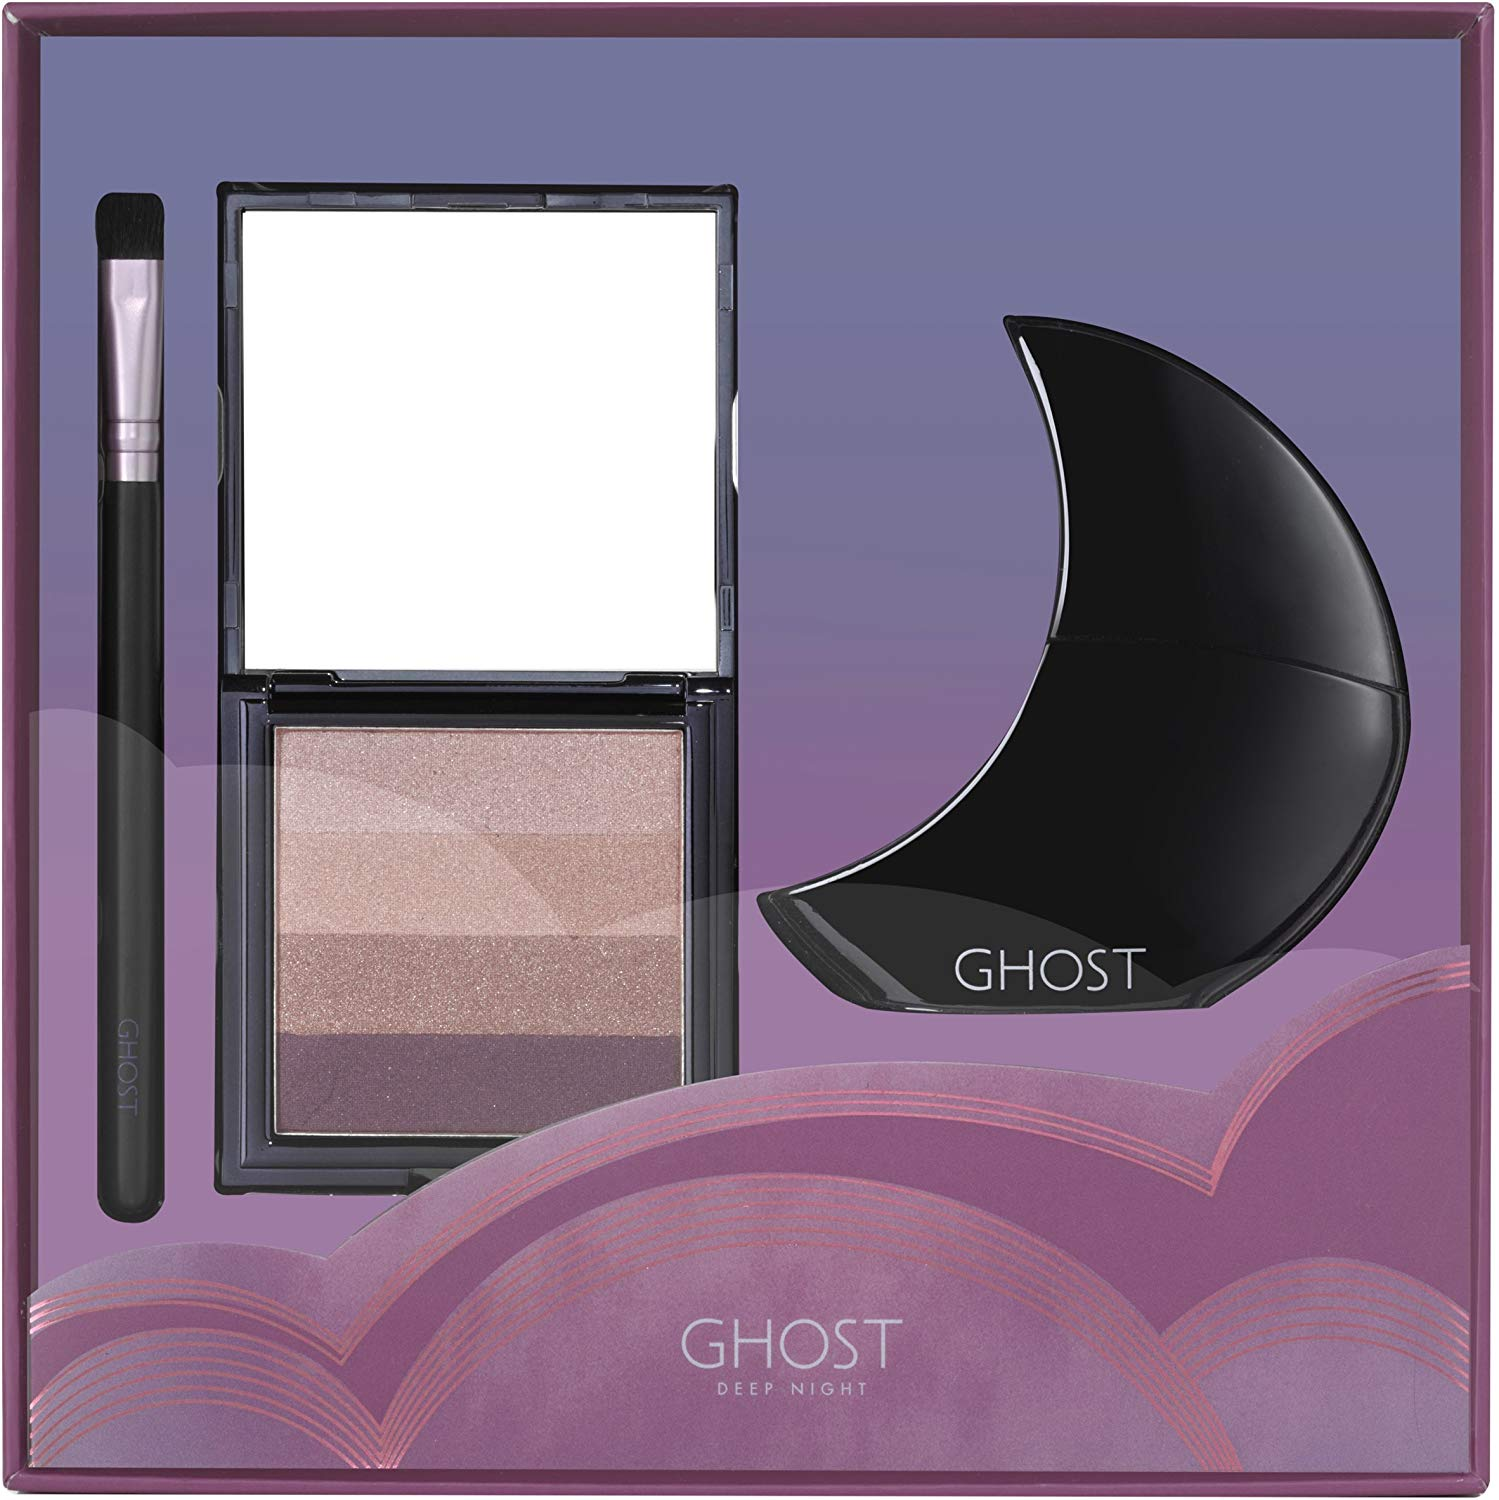 Ghost Deep Night Eau de Toilette Spray, Eye Shadow Pallet and Makeup Brush Gift Set £13.5 Prime +4.49 Non Prime